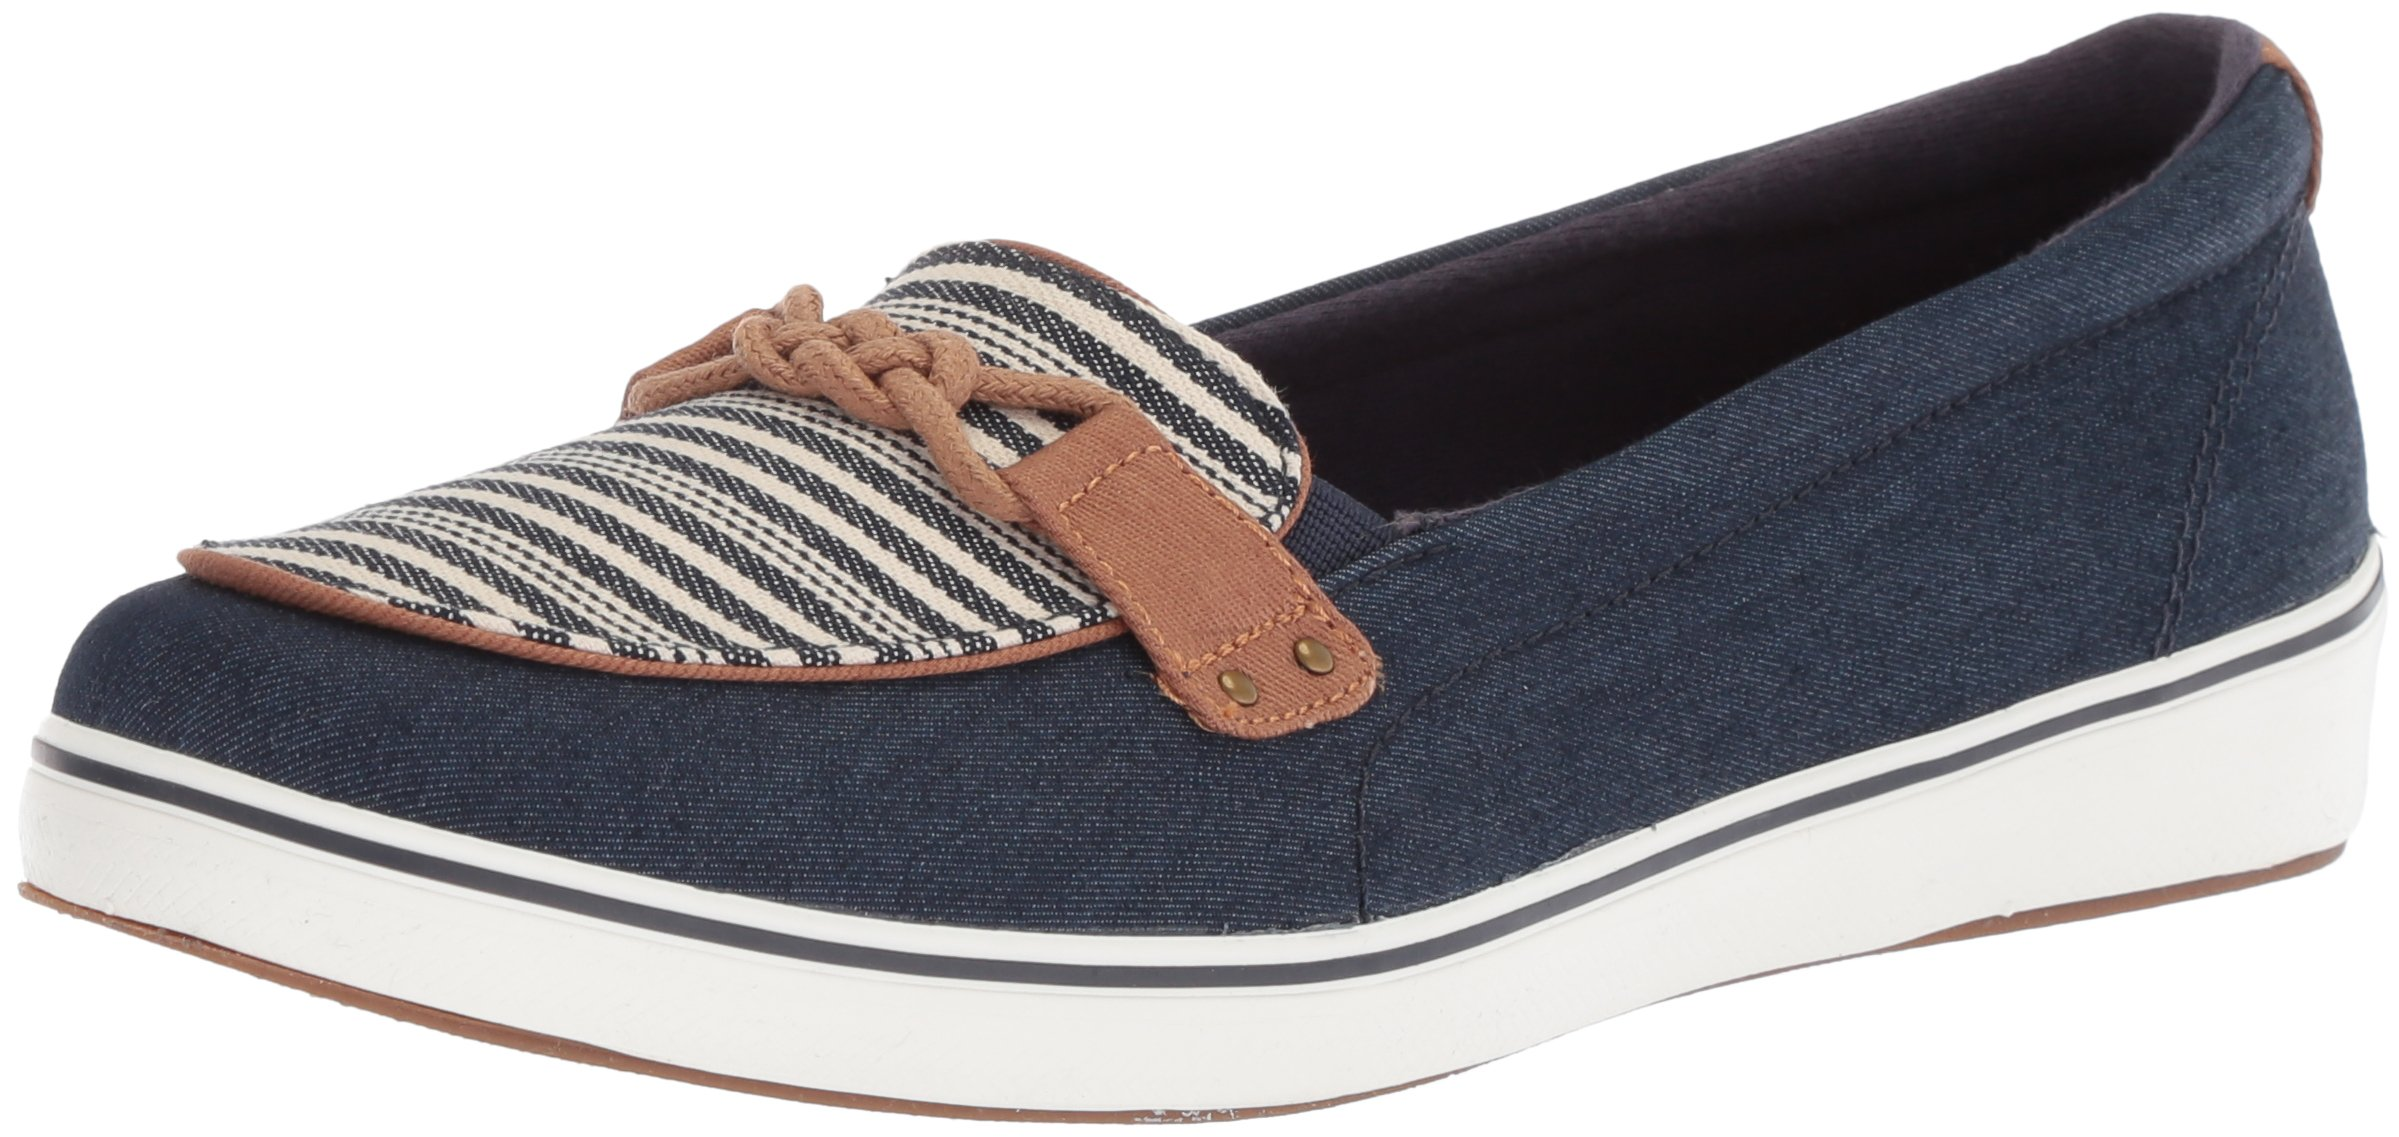 Grasshoppers Women's Windham Stripe Sneaker, Peacoat Navy, 6 W US